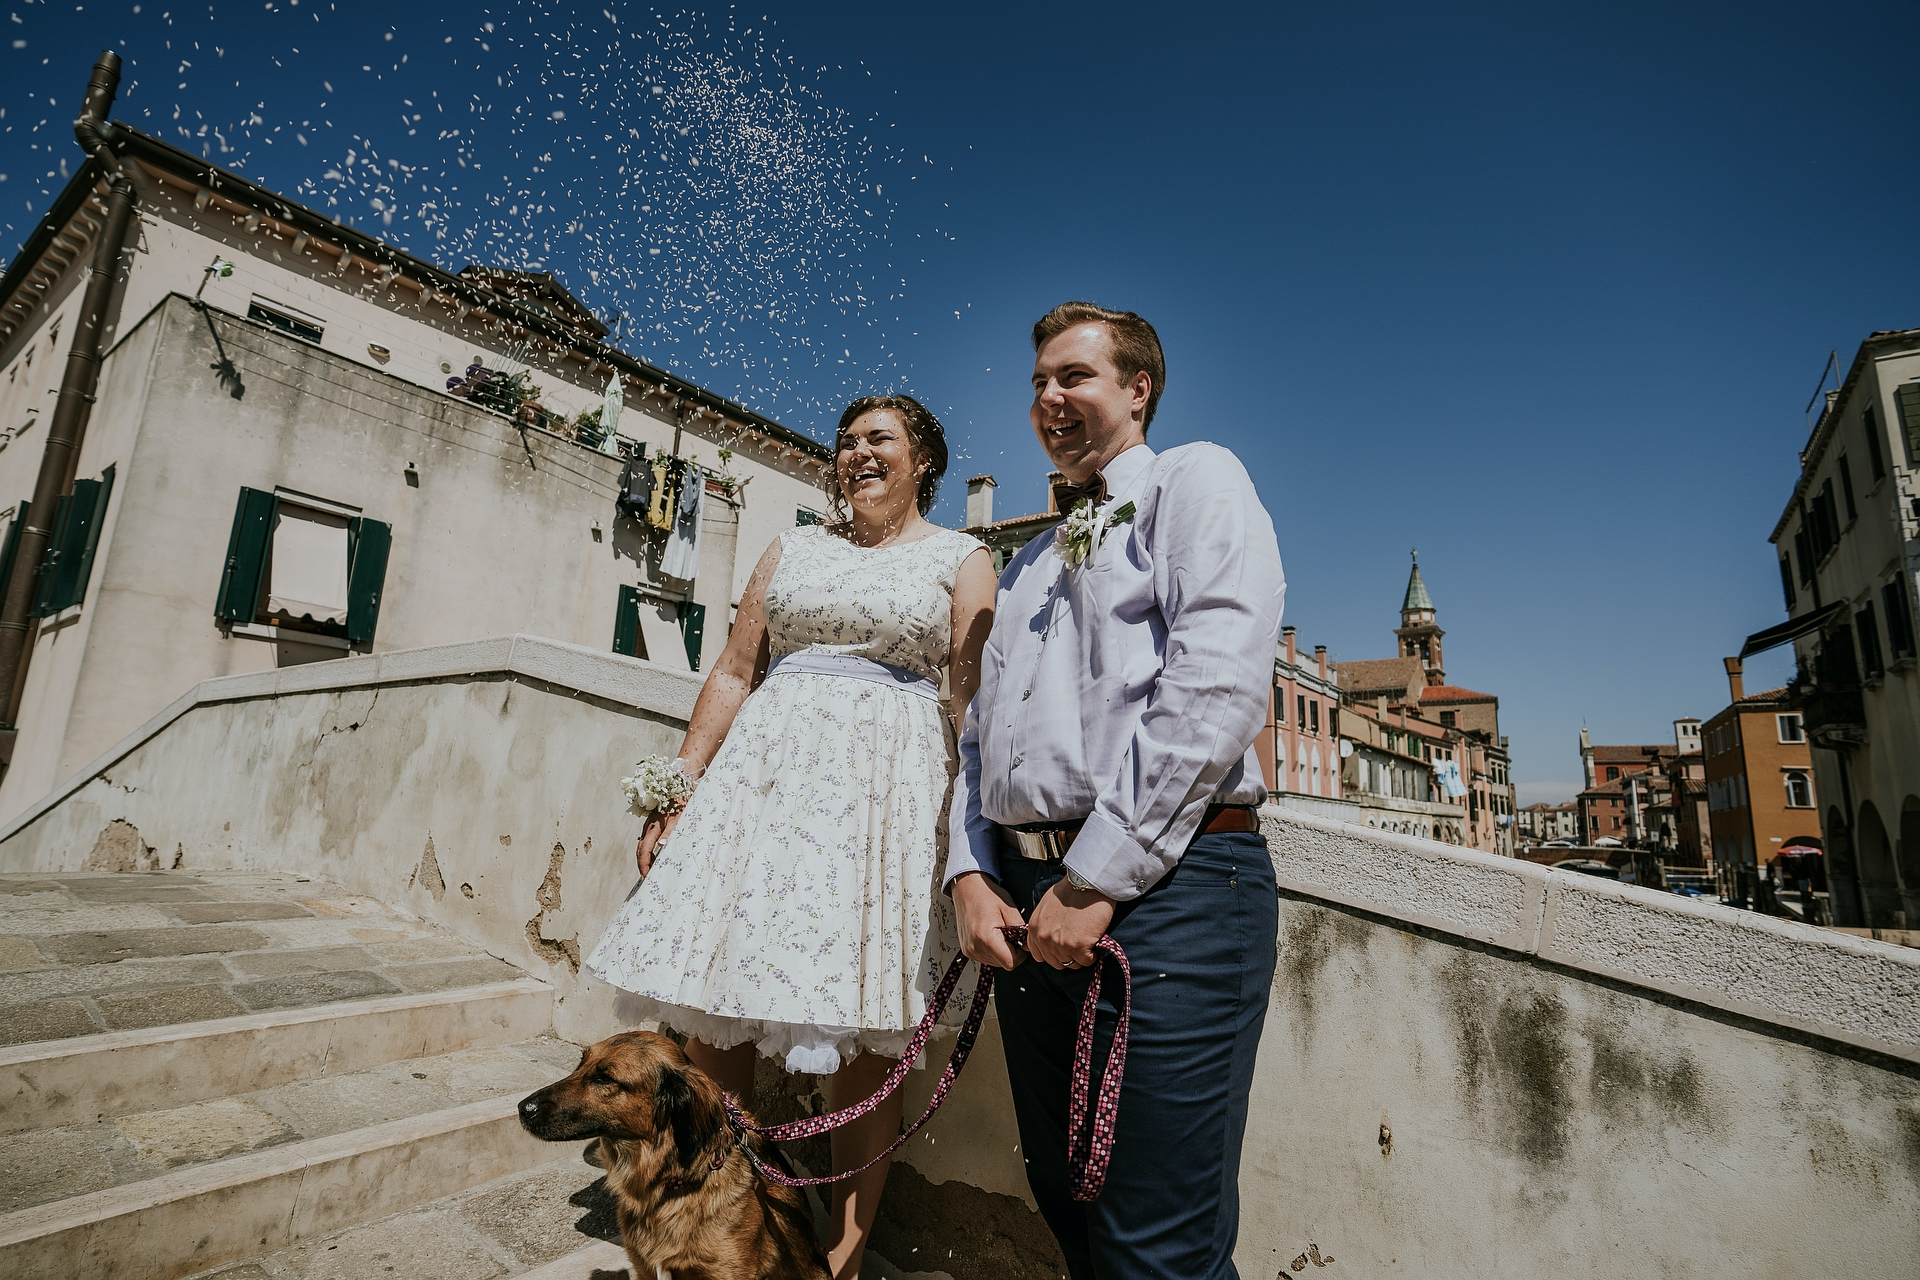 Chioggia Elopement Photographer | There is joy, tears of emotion, and rice falling from the sky